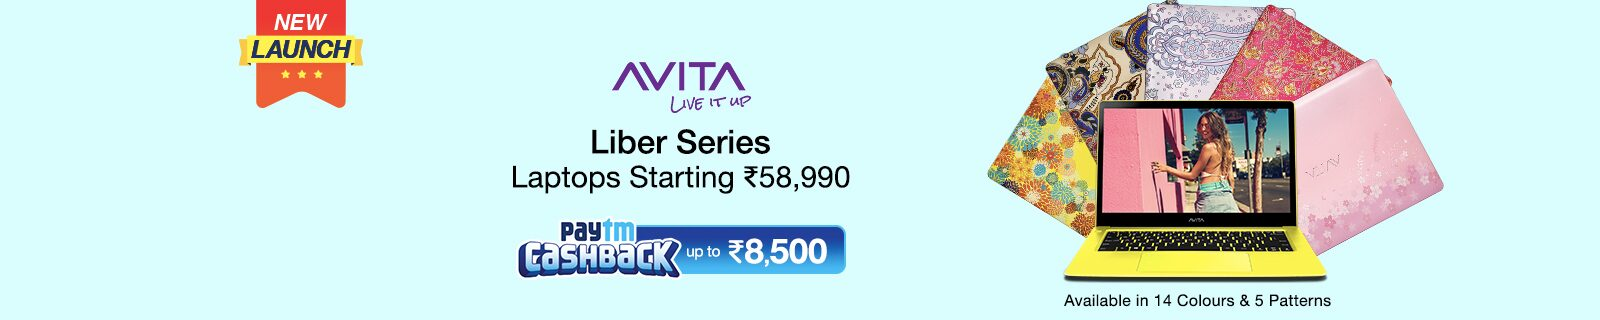 New Launch Avita Laptop